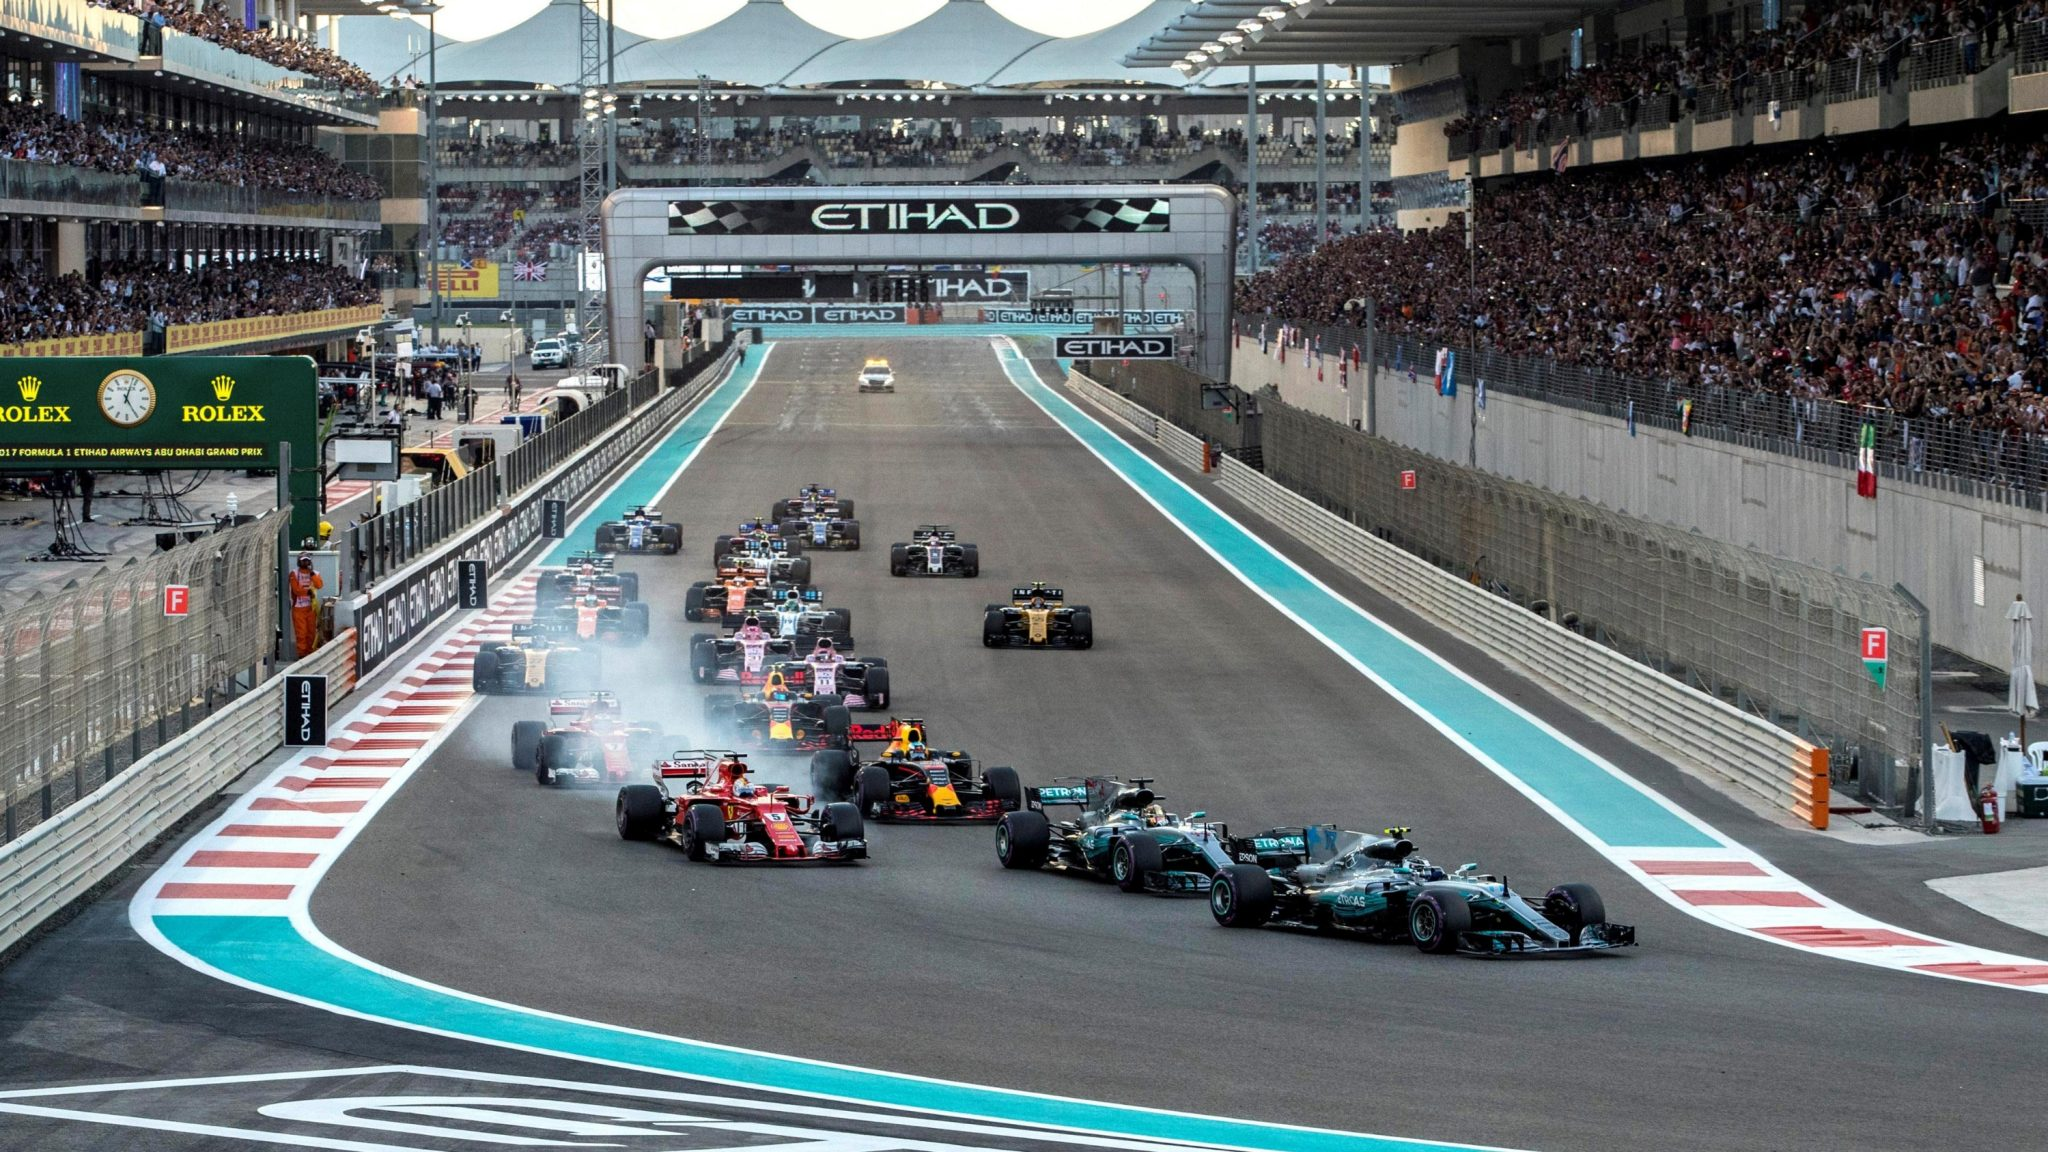 Formula 1 to launch F1 TV at Spanish Grand Prix in May